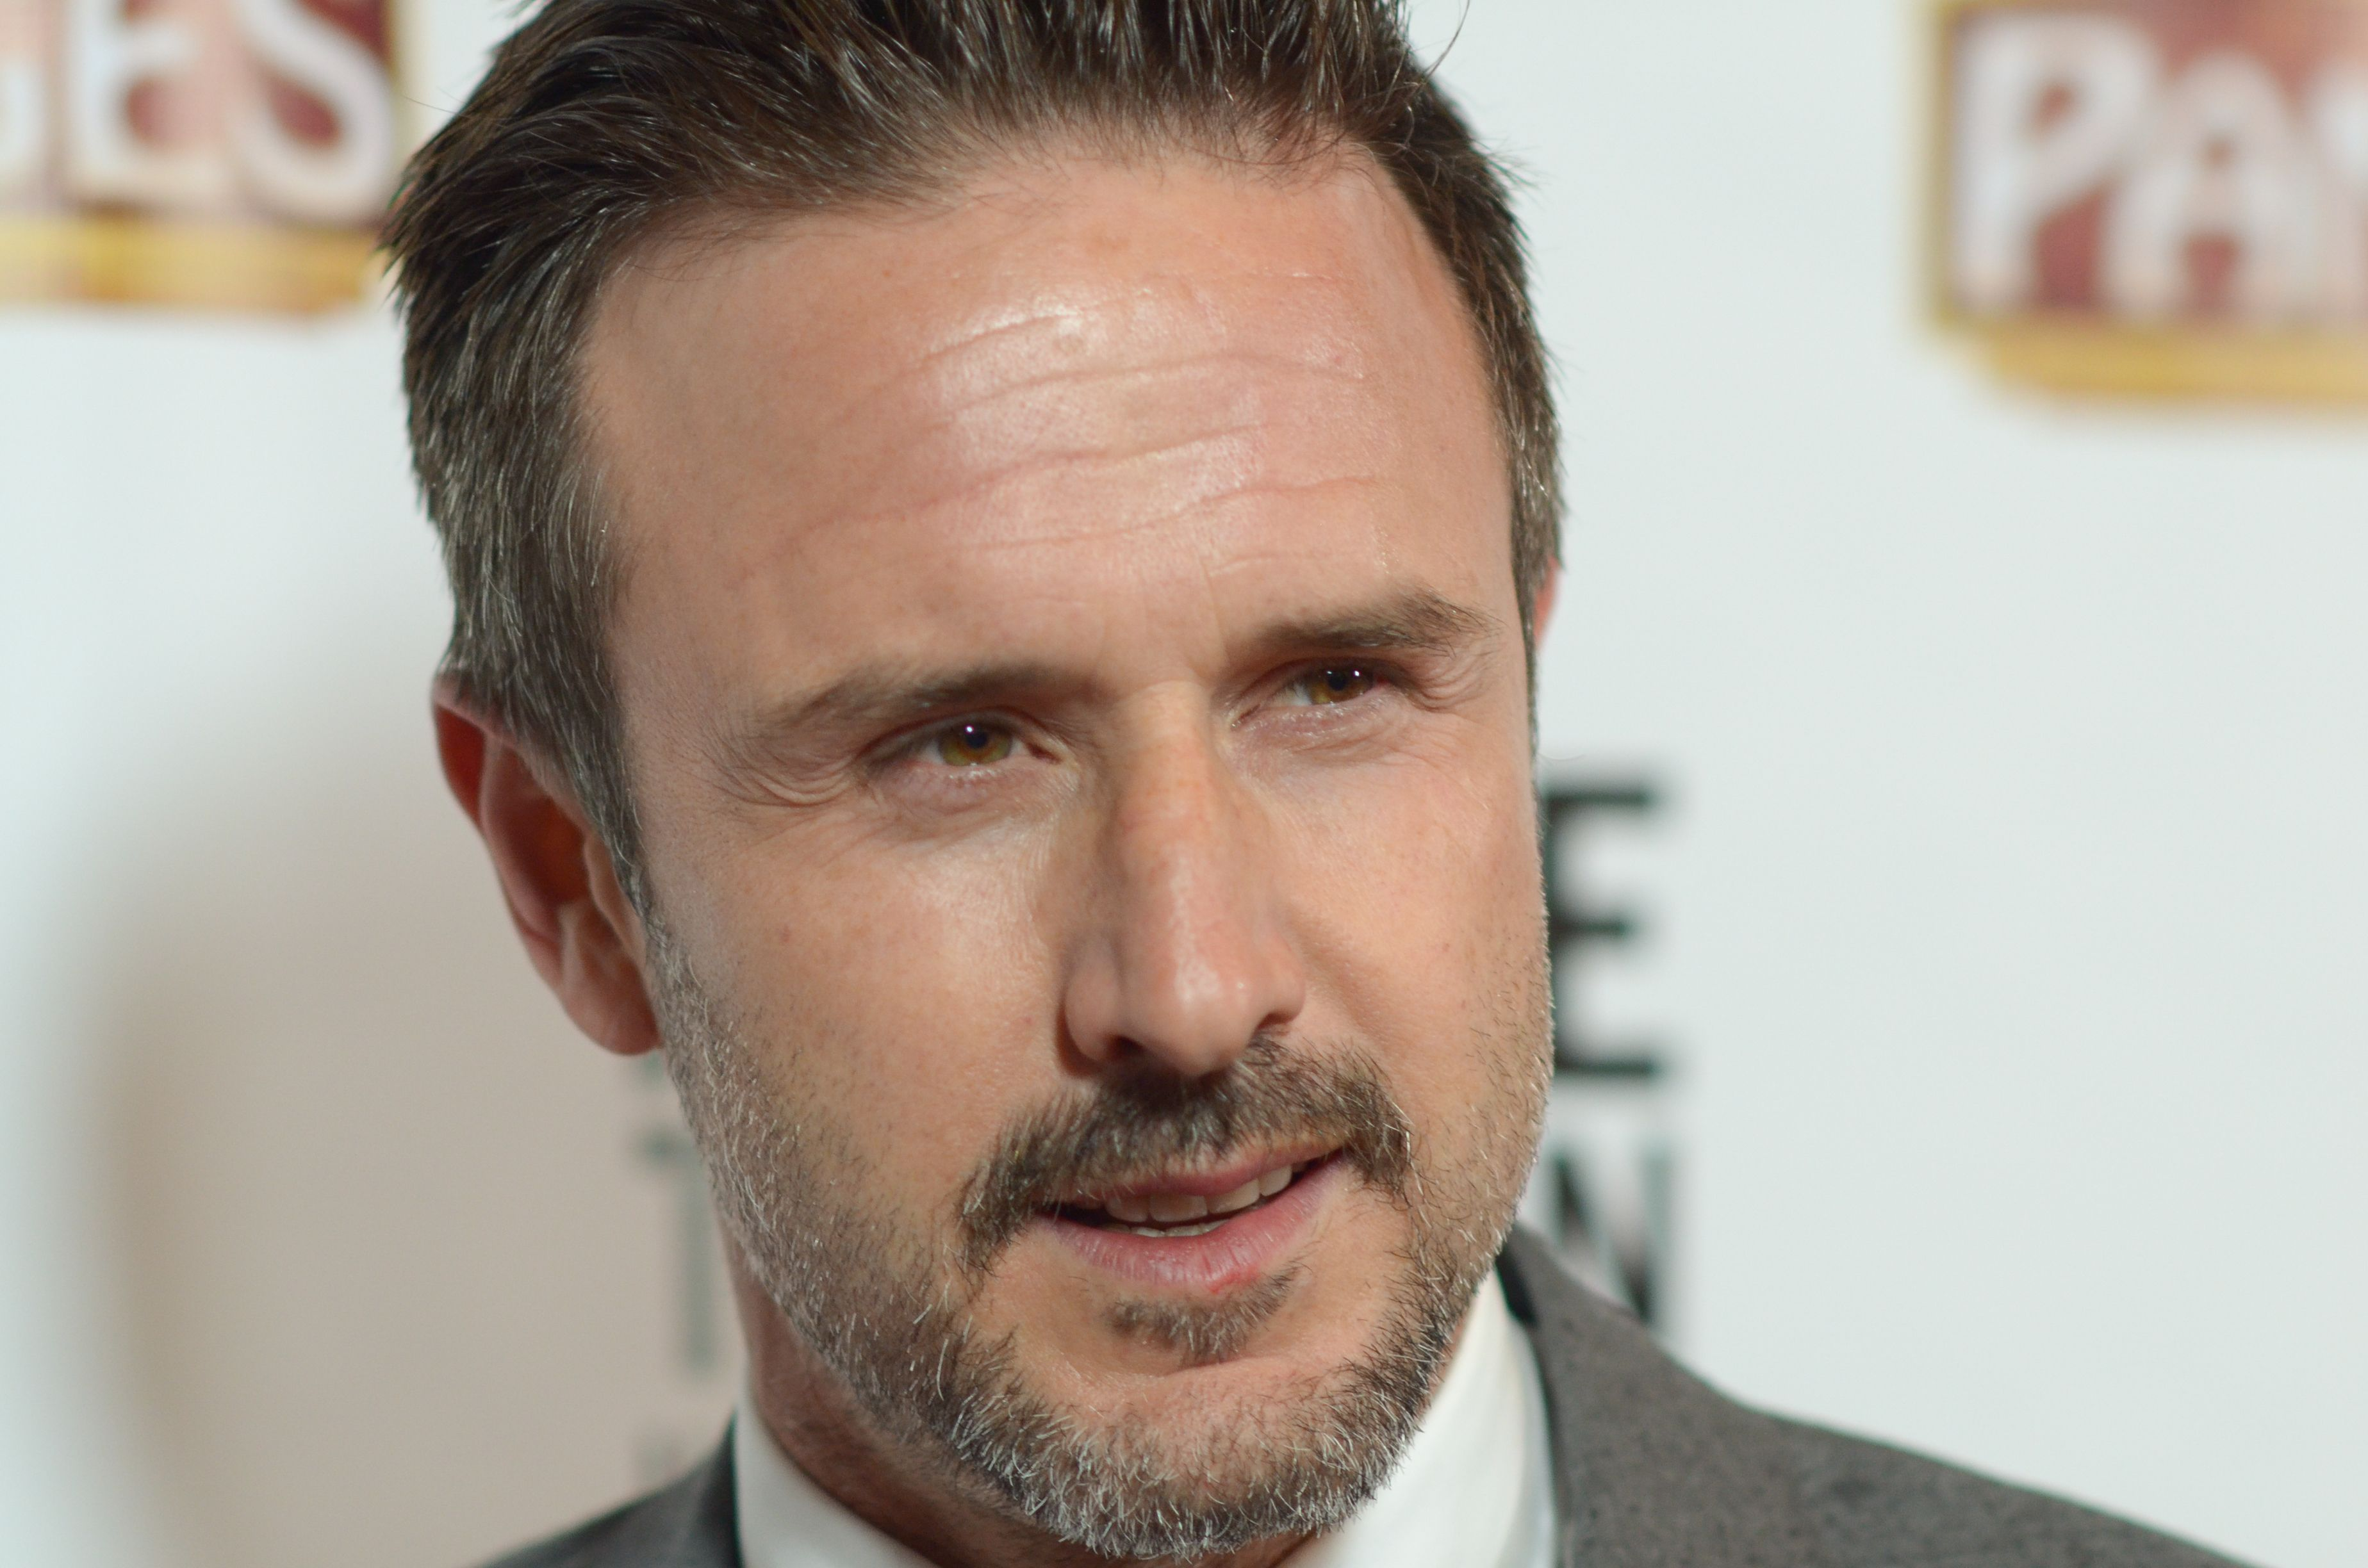 David Arquette Is a Wrestler Now, and a 'Death Match' Left Him Brutalized